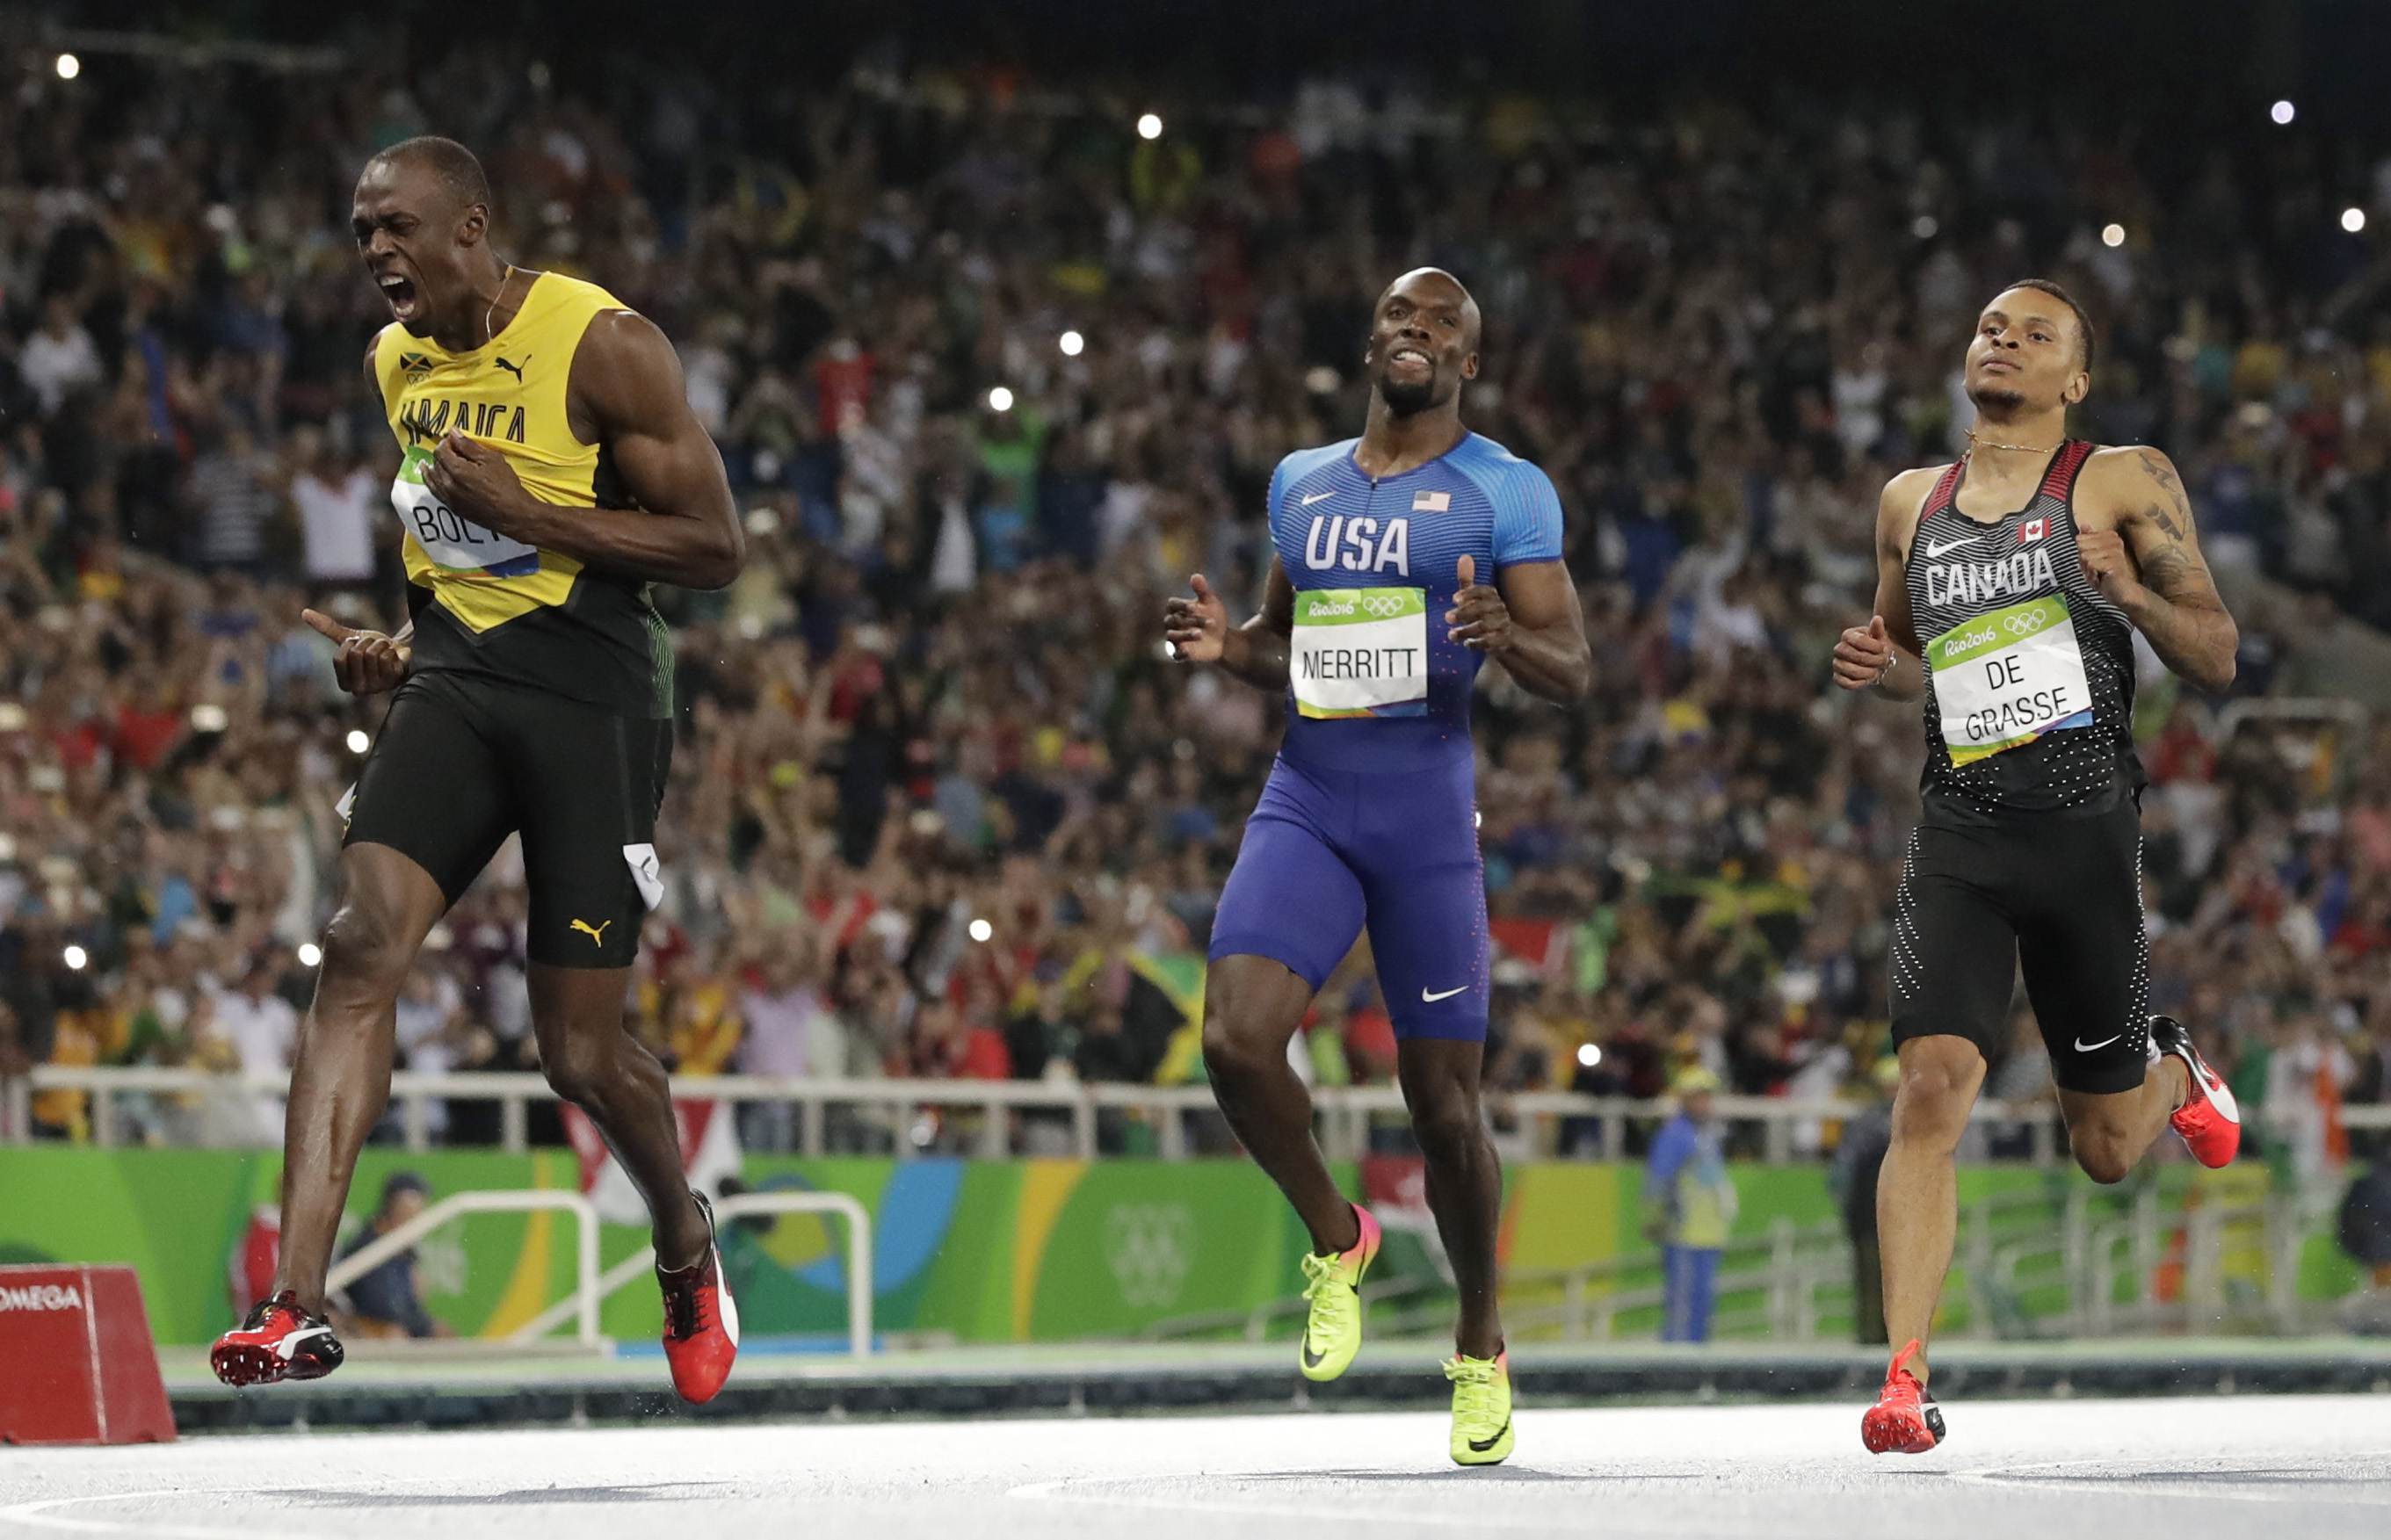 FILE - In this Thursday, Aug. 18, 2016 file photo, Usain Bolt from Jamaica, left, crosses the line to win the gold medal in the men's 200-meter final ahead of second placed Canada's Andre De Grasse, right, during the athletics competitions of the 2016 Sum